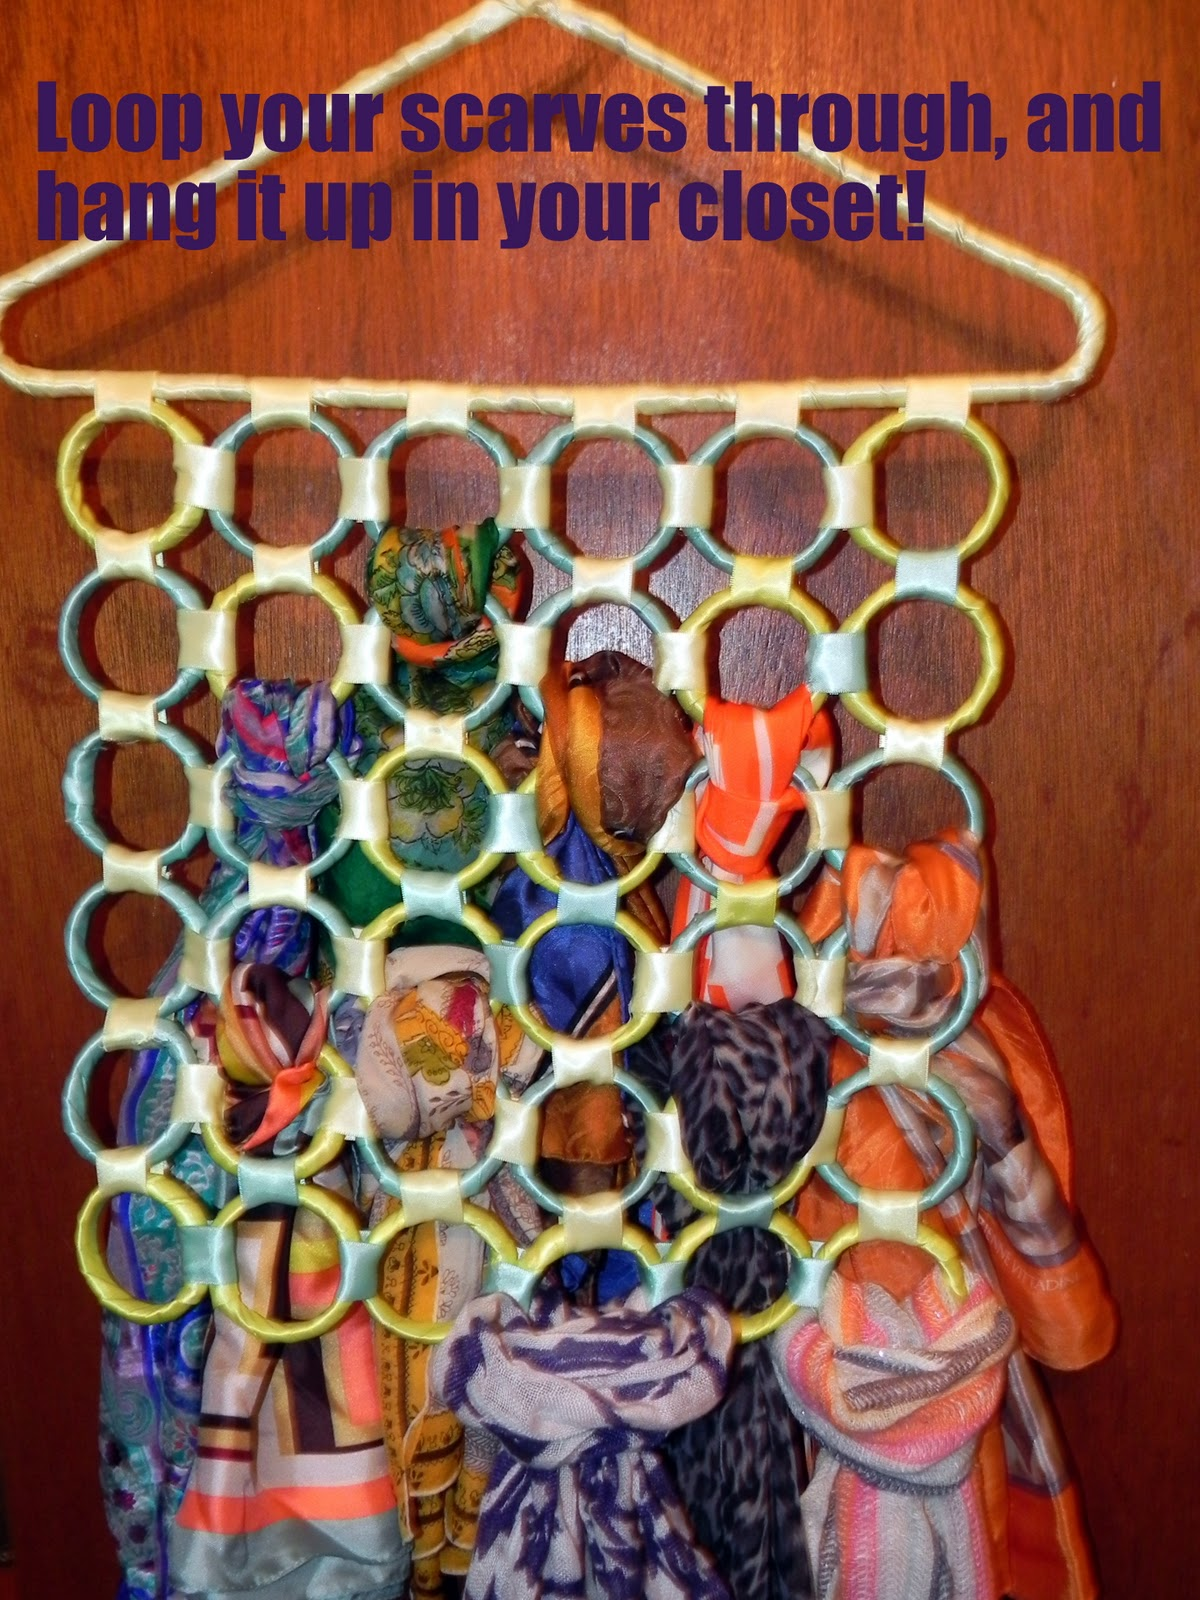 Smart N Snazzy Diy Compact Scarf Organizer And Hanger